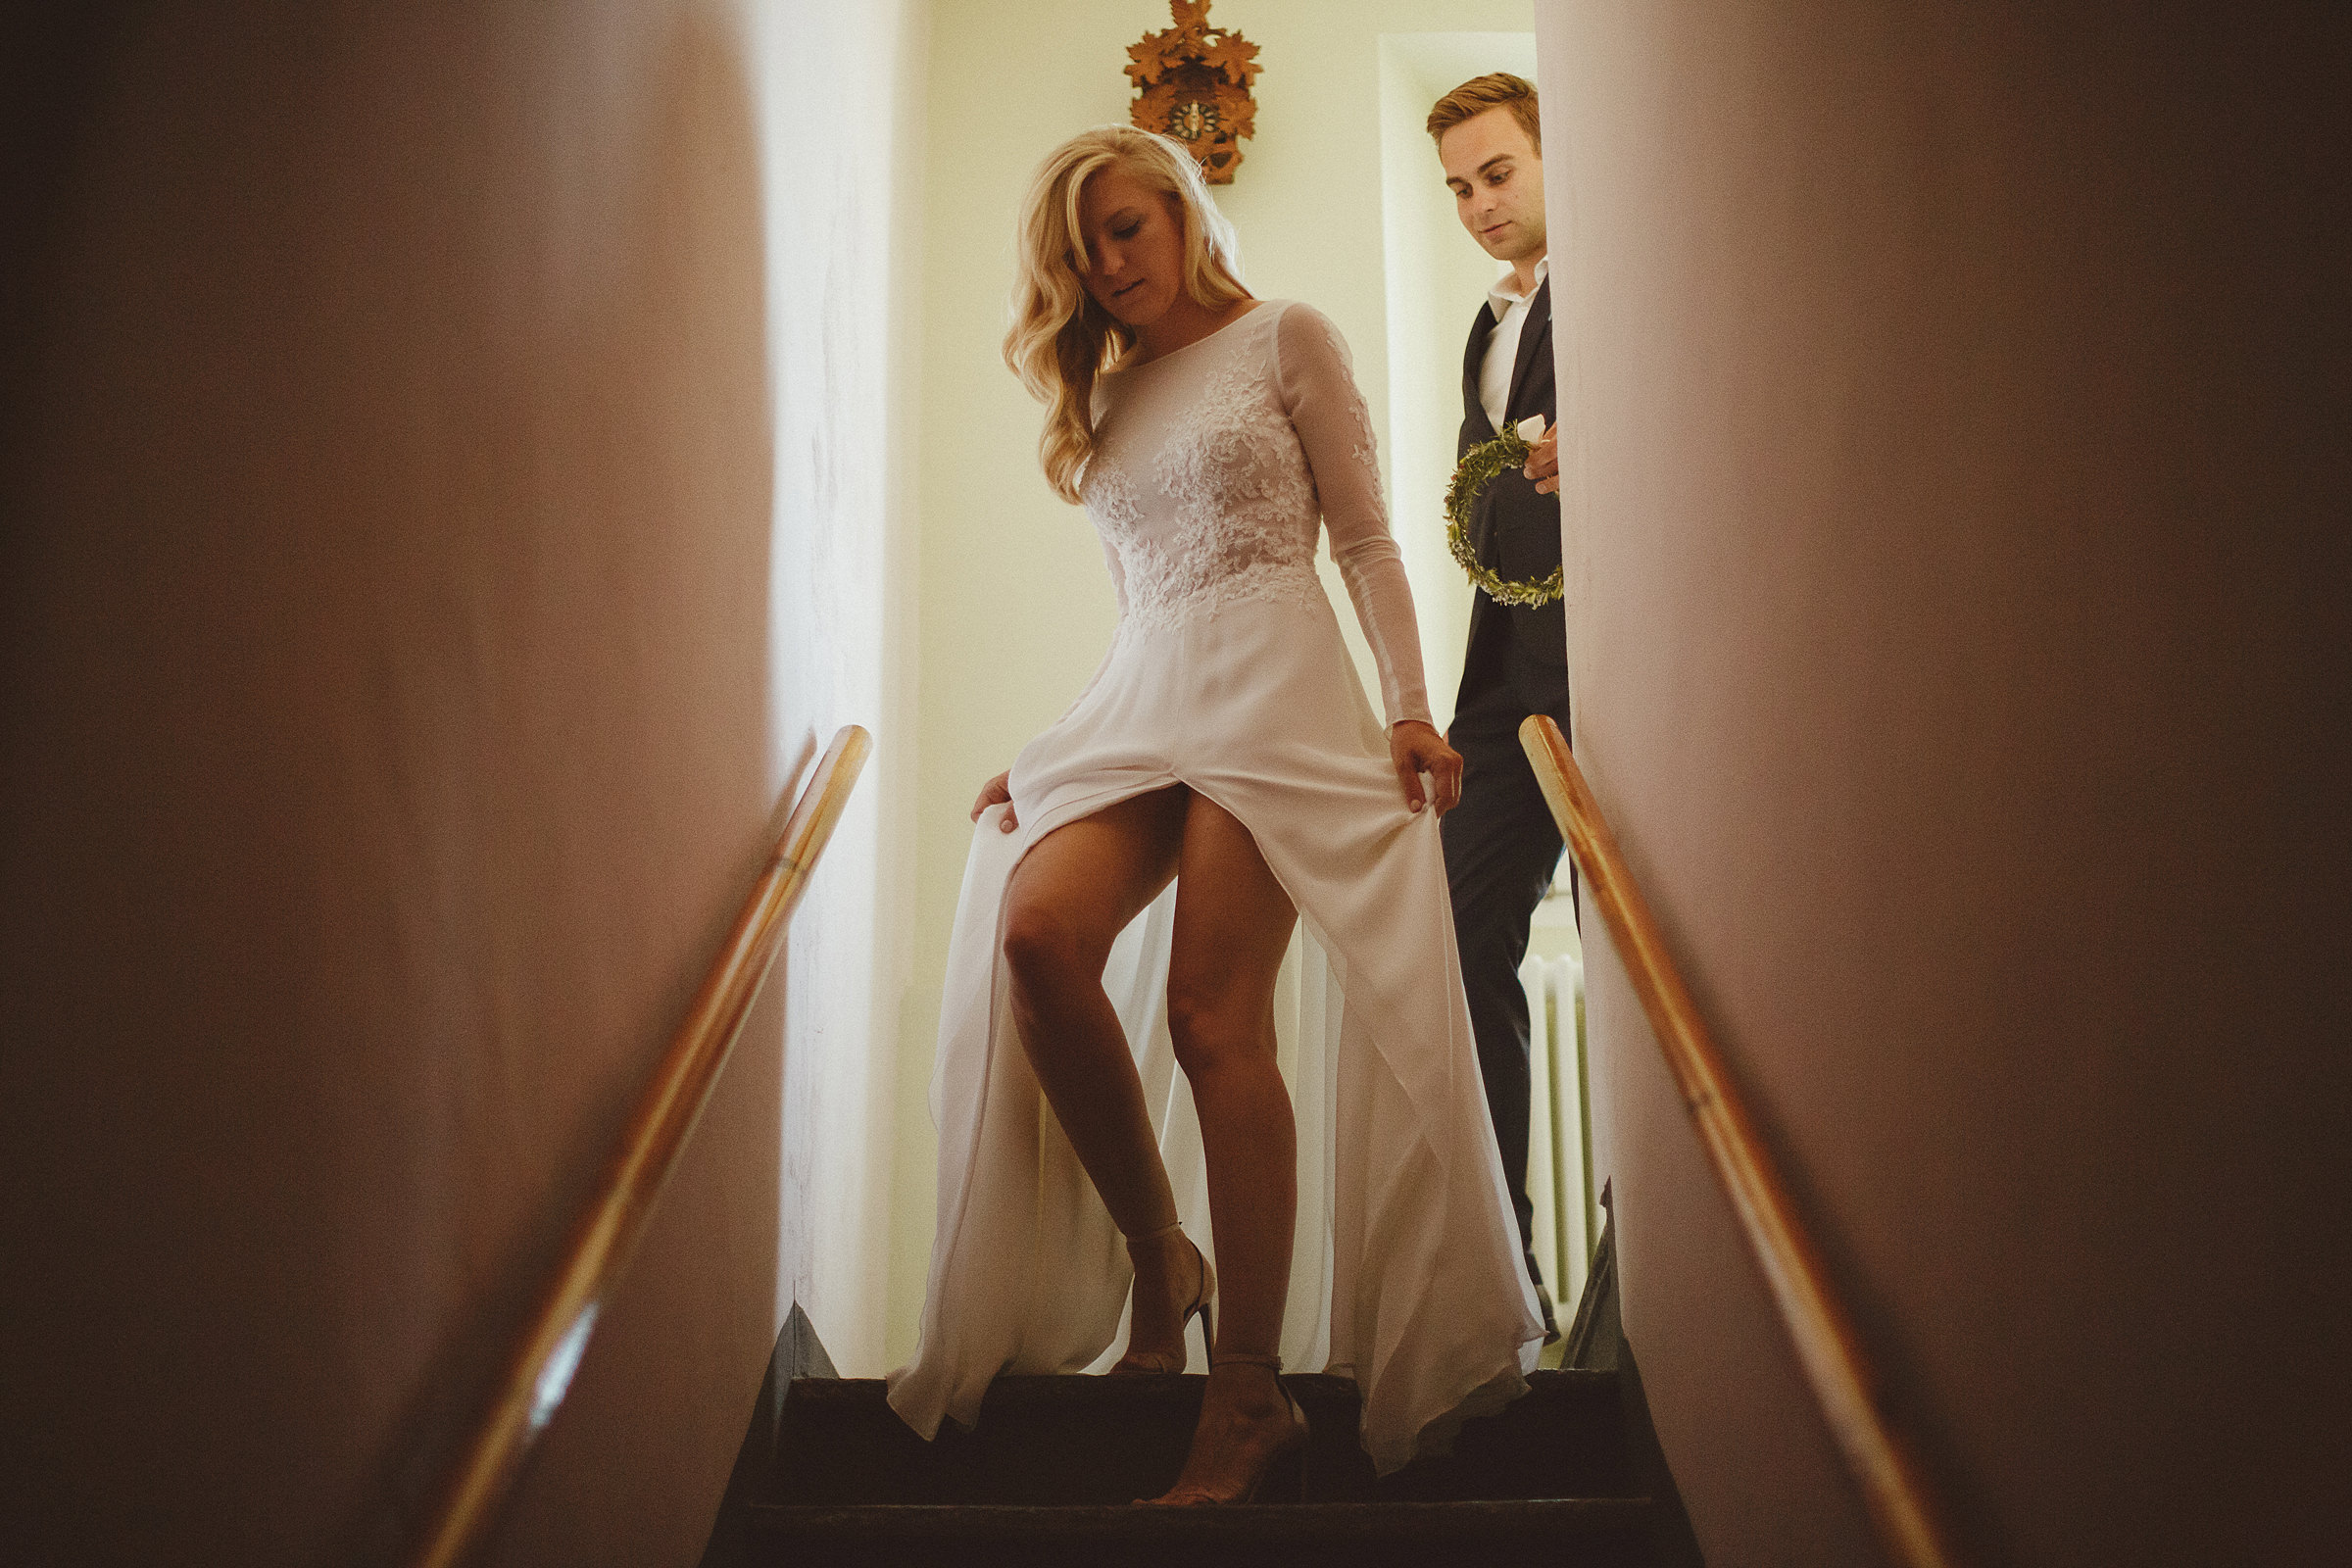 Bride descending stairs in slitted gown - photo by Ed Peers Photography